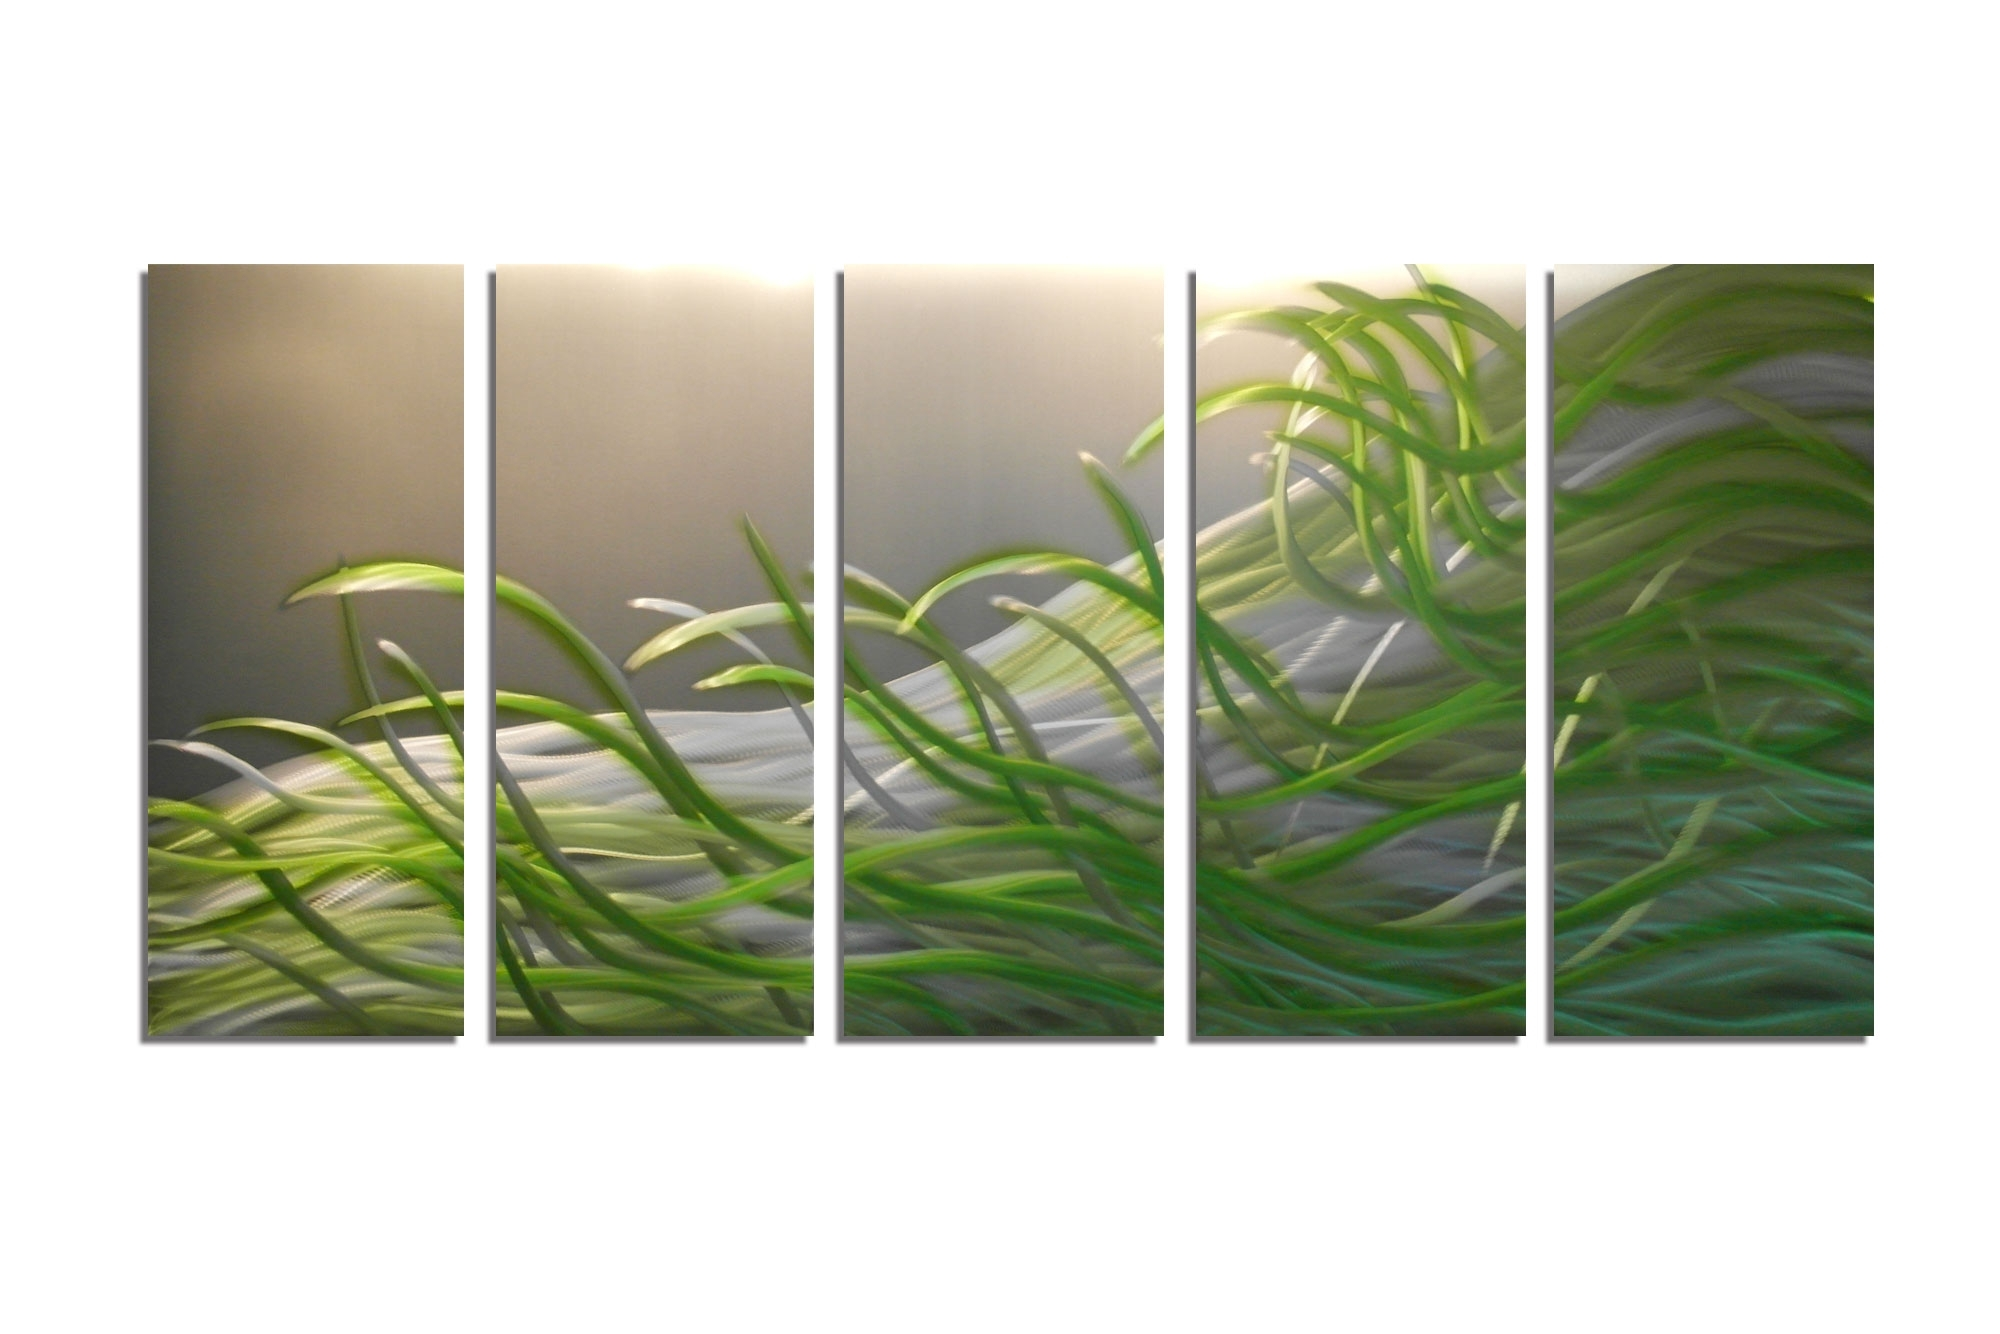 Resonance Green 36X79 - Metal Wall Art Abstract Sculpture Modern intended for Green Wall Art (Image 19 of 20)